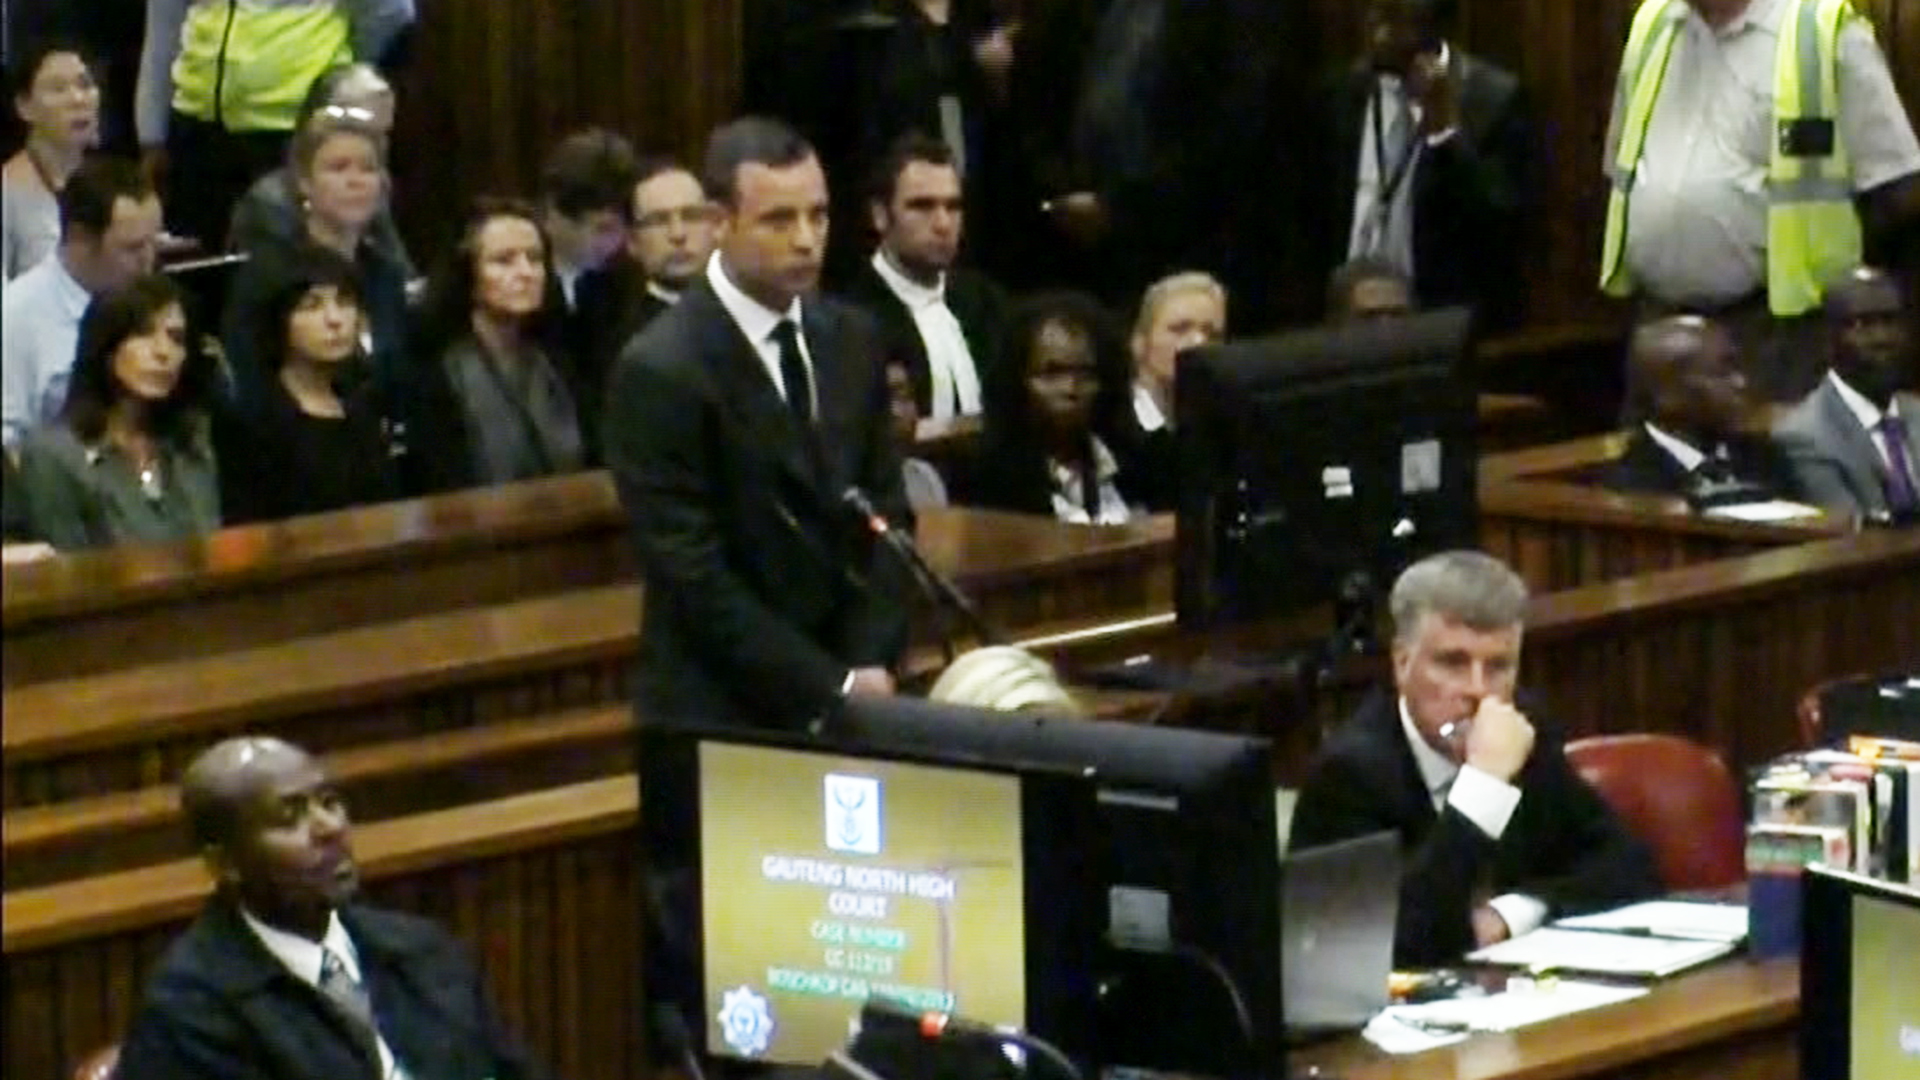 Pistorius Pleads Not Guilty Murder Trial N42926 besides World Africa 26627086 moreover 2014 03 01 archive furthermore Oscar Pistorius Latest News YmPuW2ZUgByeCLP6NQqjPd4GJYXgp7hNdbbIDIjAnqg likewise citizenside. on oscar pistorius trial update live